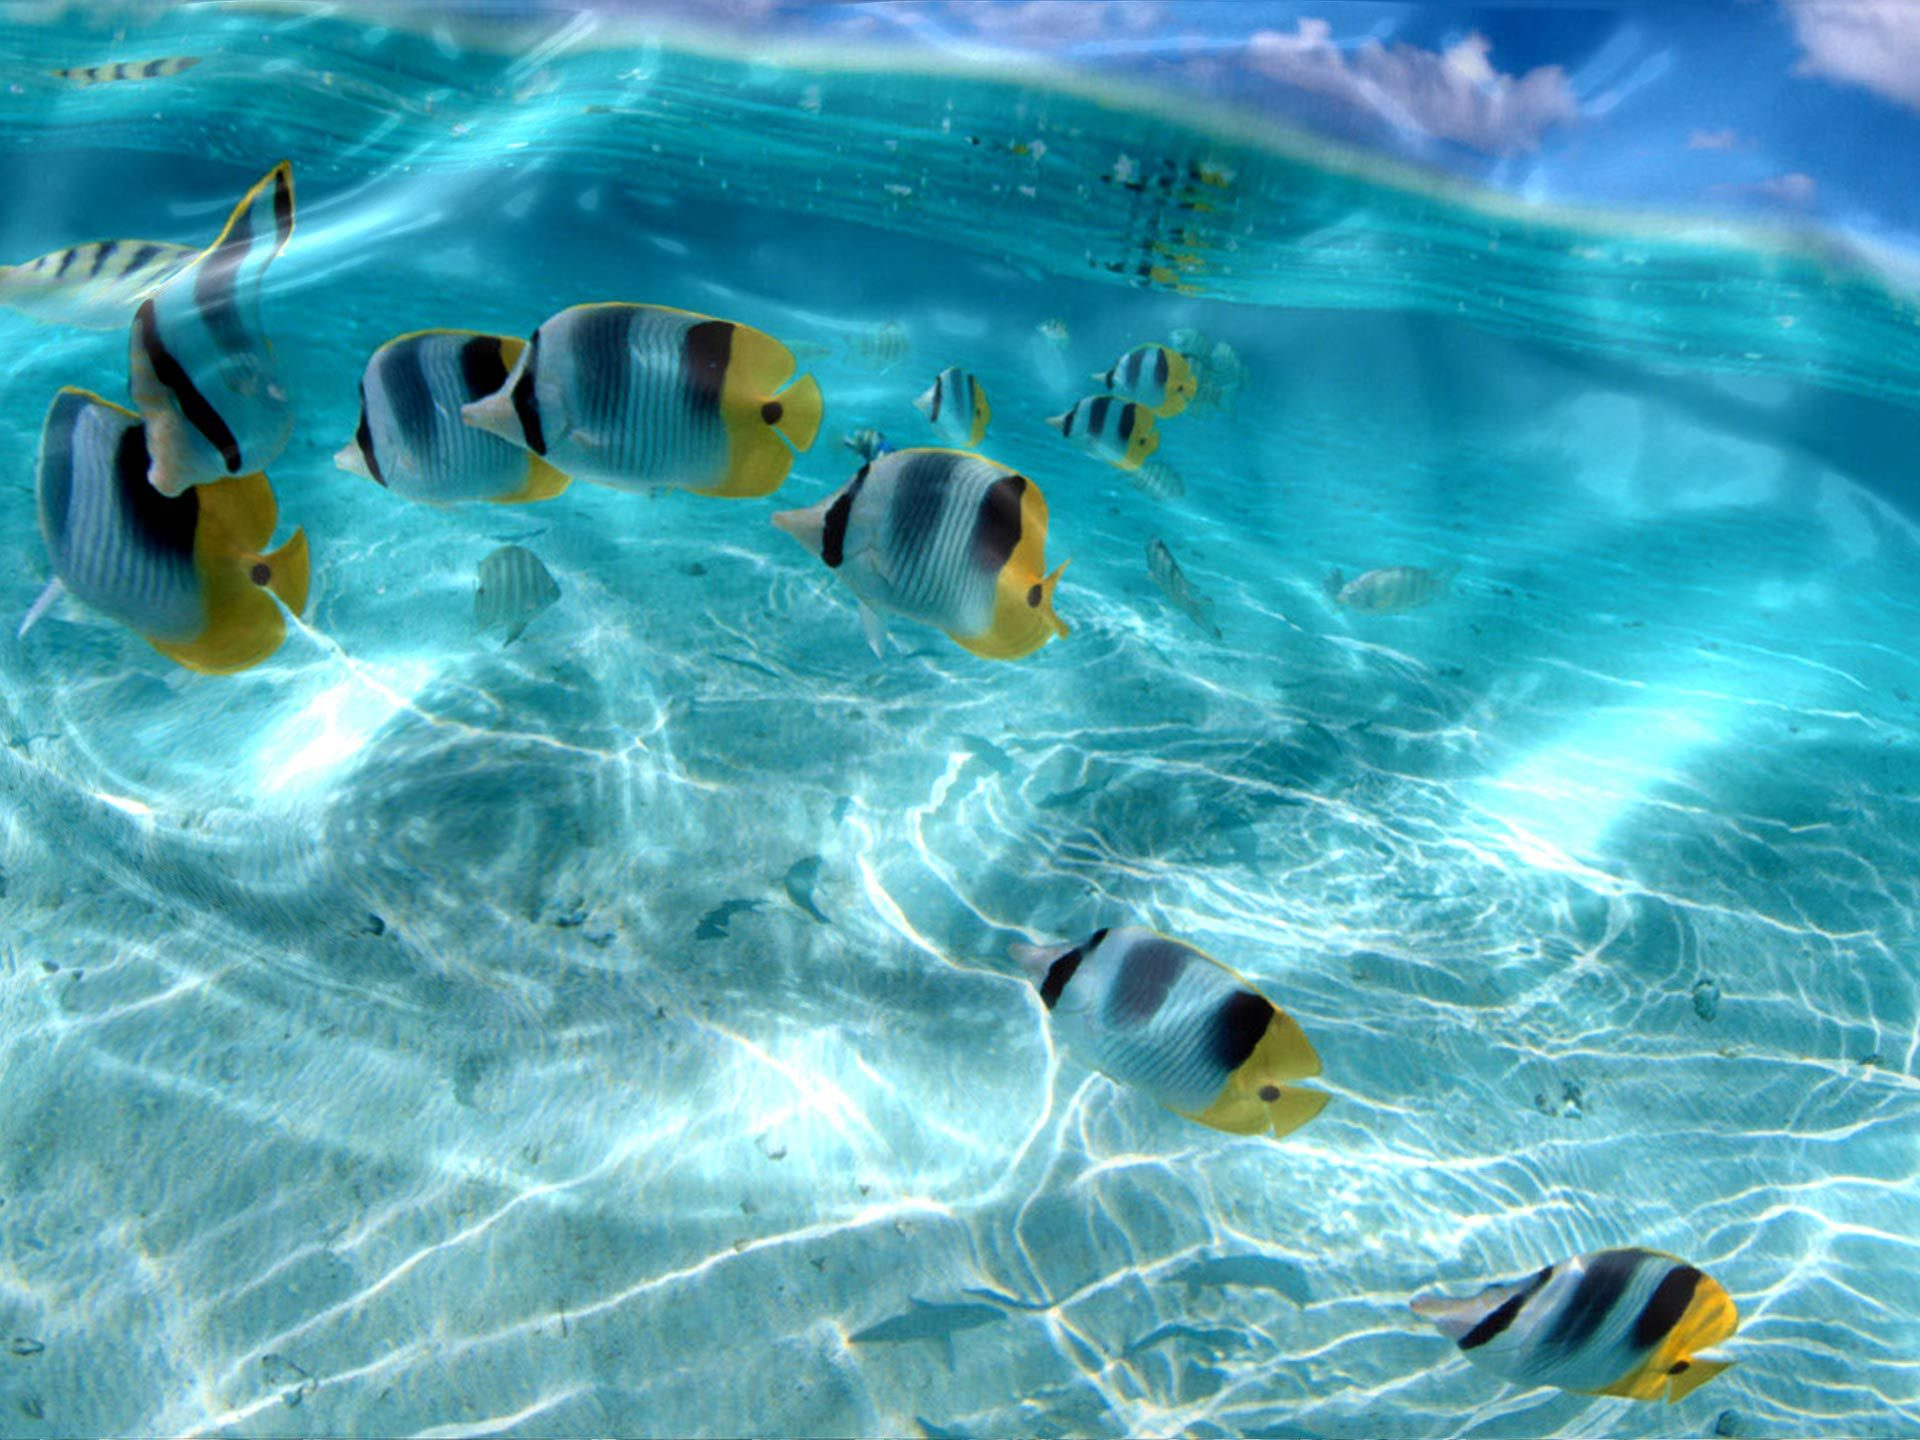 Live Wallpaper Fish In Water Desktop Free Live 134021